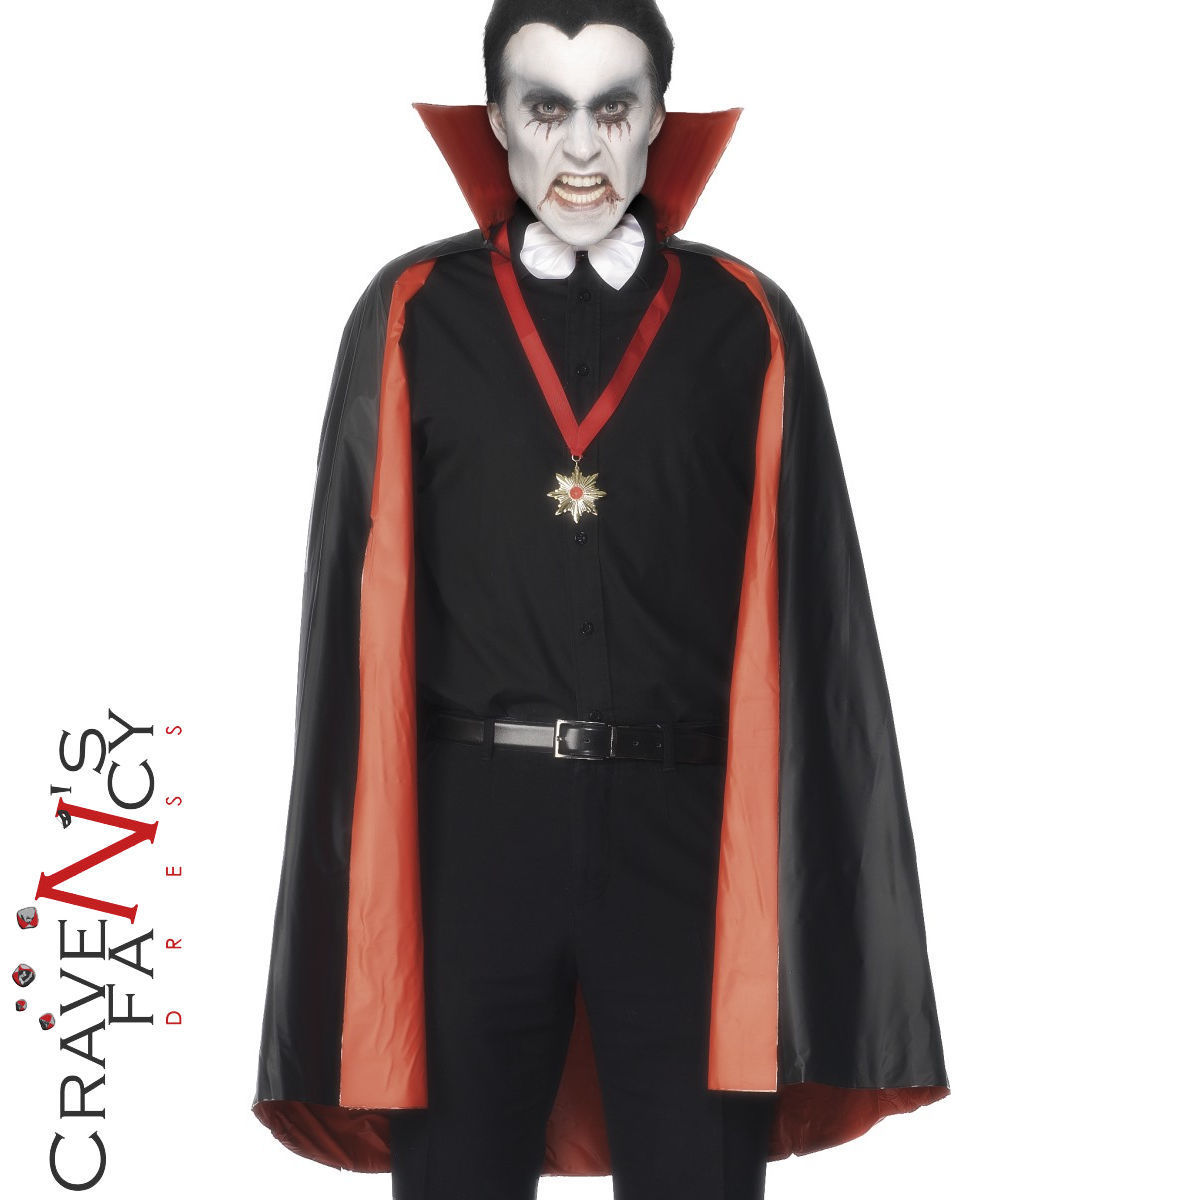 Details about PVC Reversible Vampire Count Dracula Cape Black   Red  Halloween Fancy Dress f5c6bf01893c2